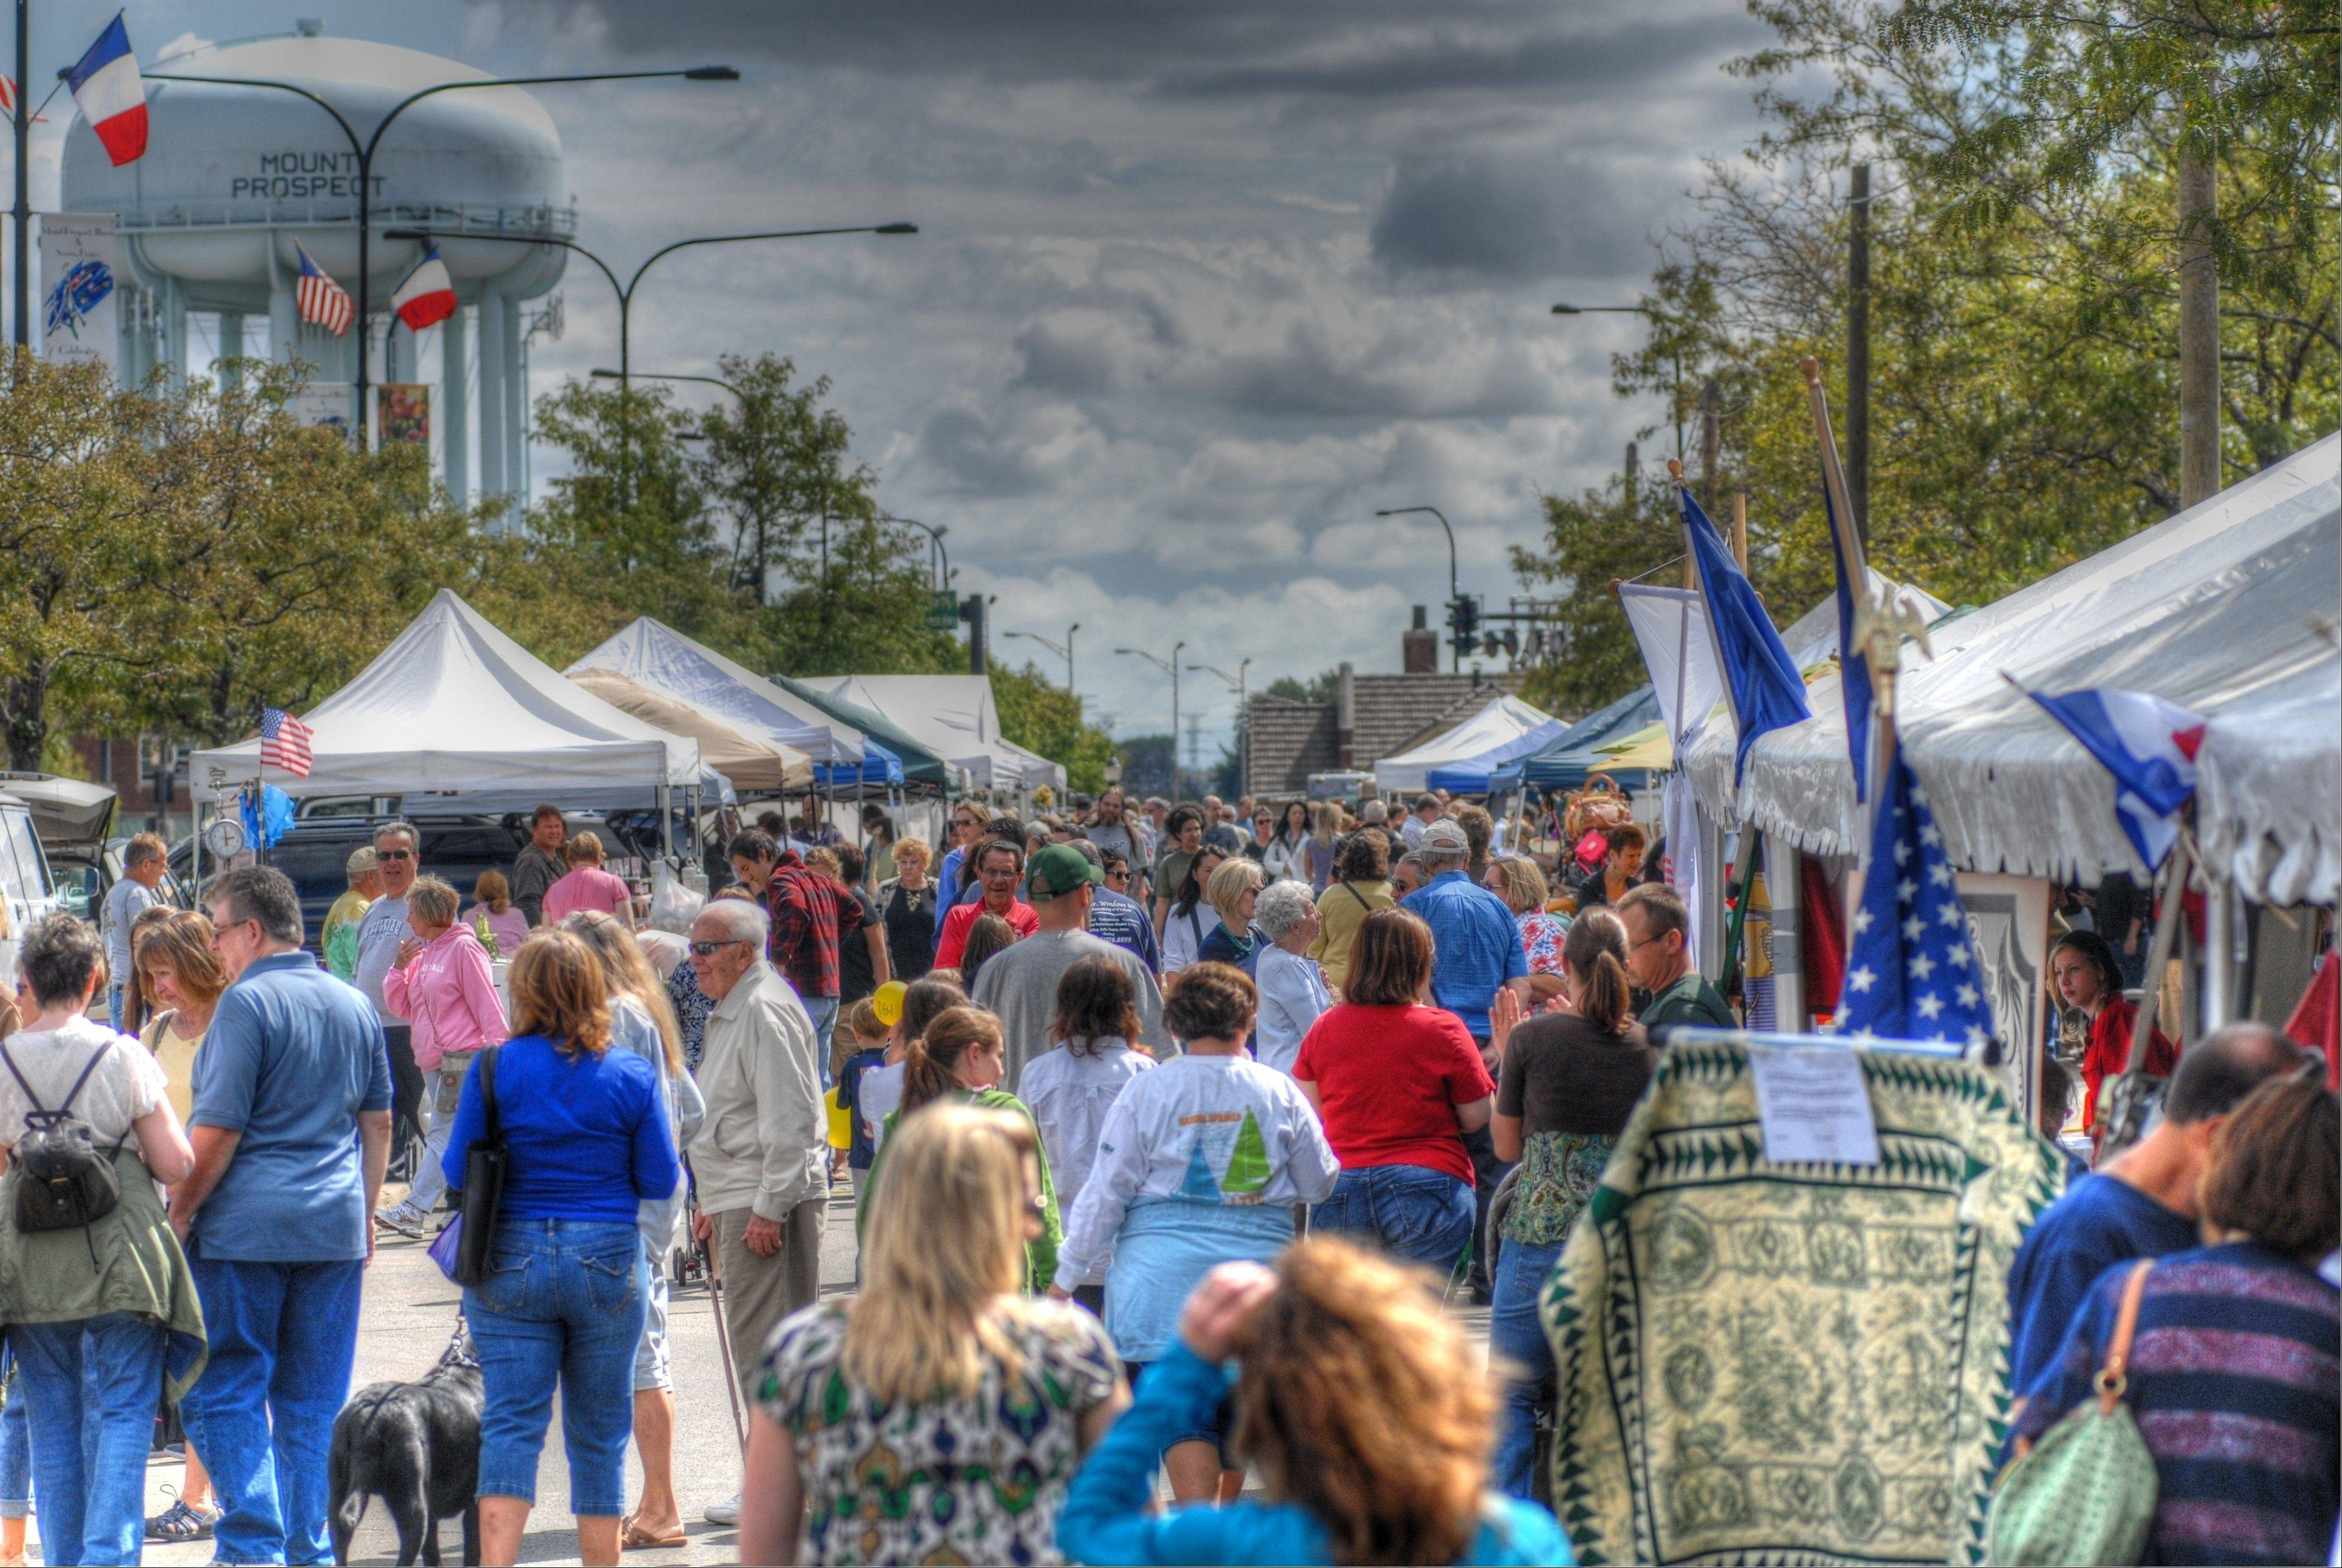 People enjoy a recent French market in downtown Mount Prospect. This year's market, which runs 8 a.m. to 1 p.m. on Sunday, will include an appearance by residents of Mount Prospect's sister city of Sèvres, France.